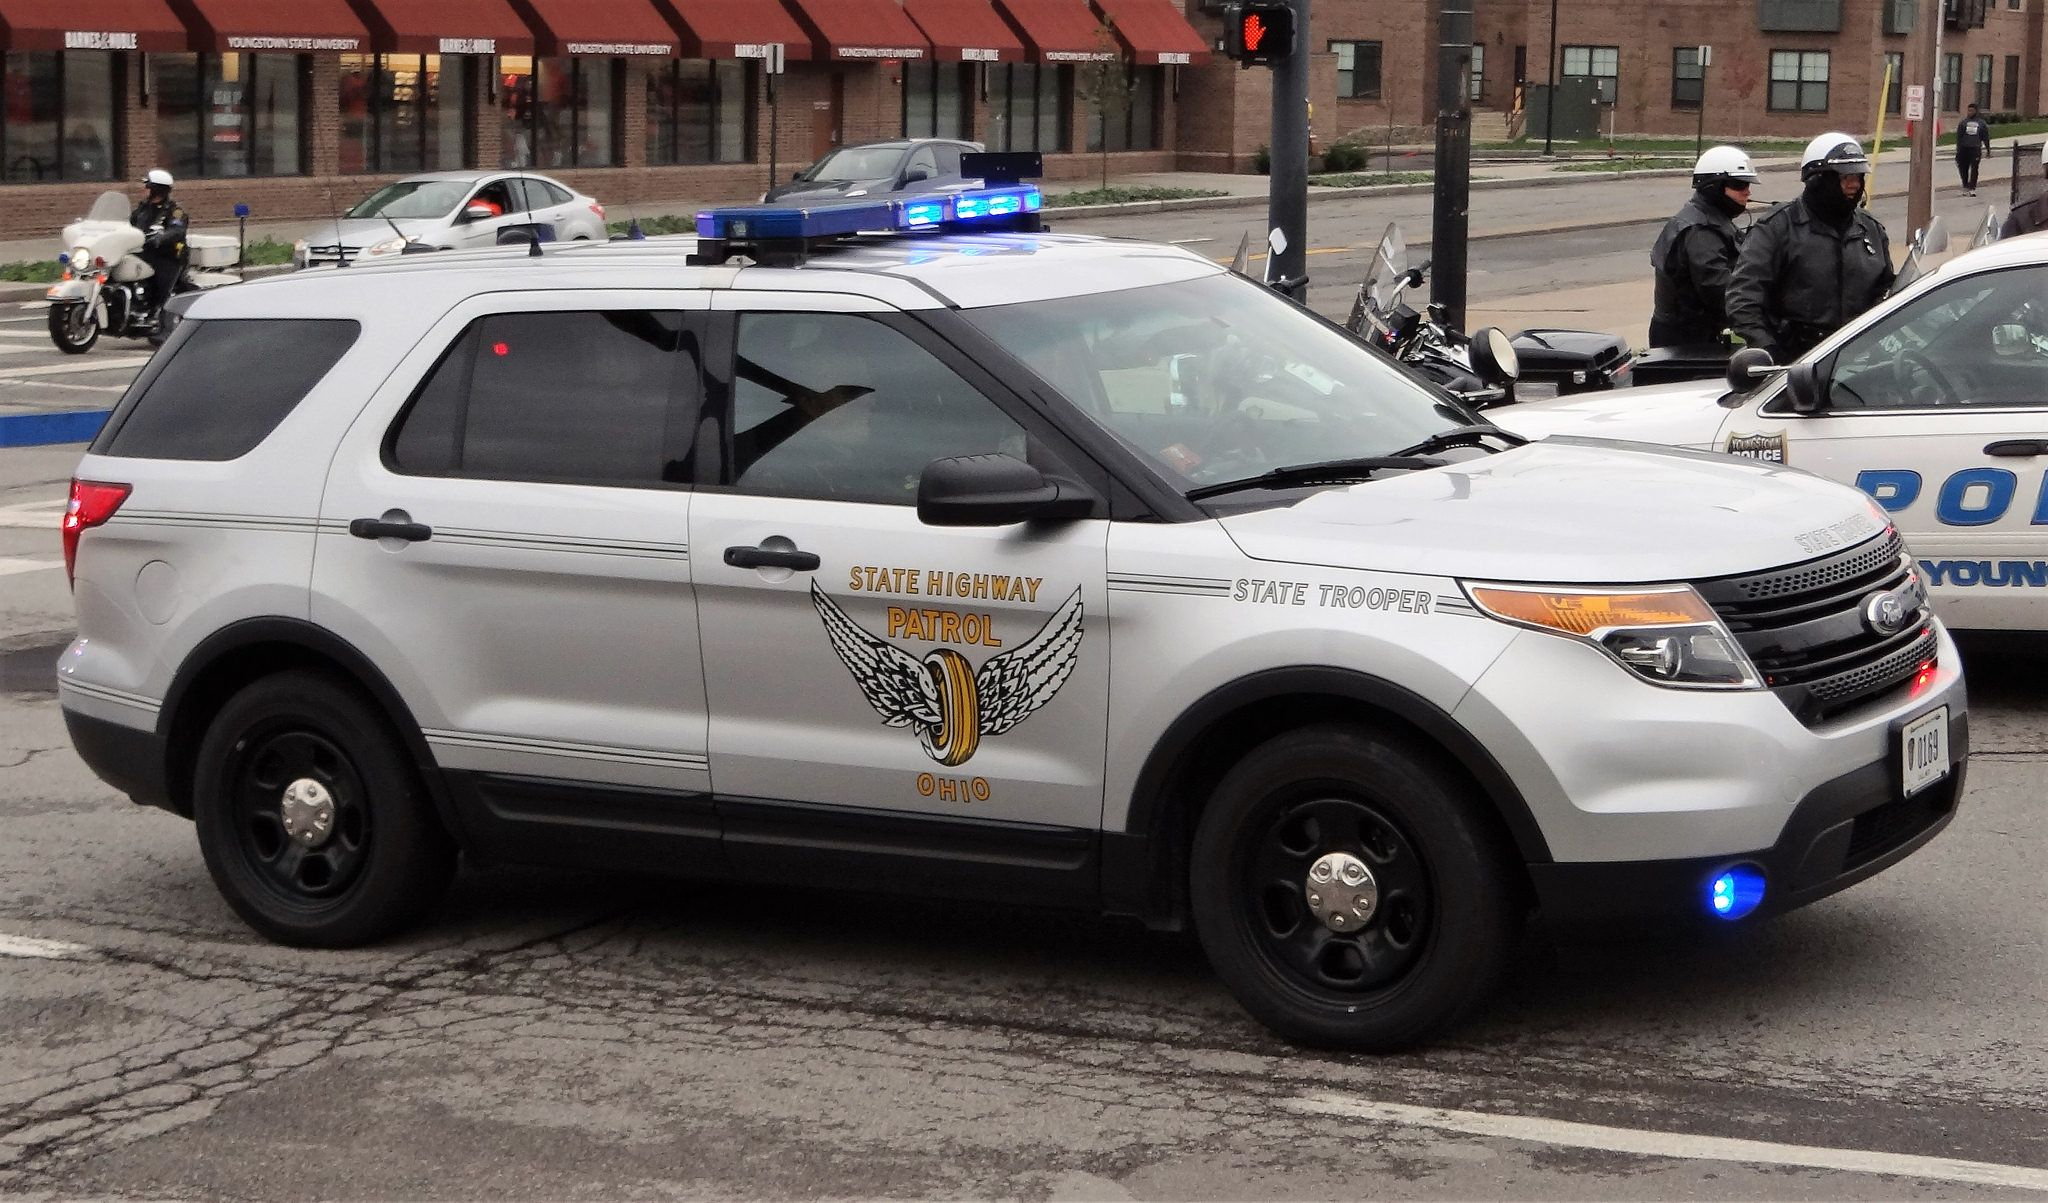 Ohio State Highway Patrol Ford Police Police Truck Emergency Vehicles